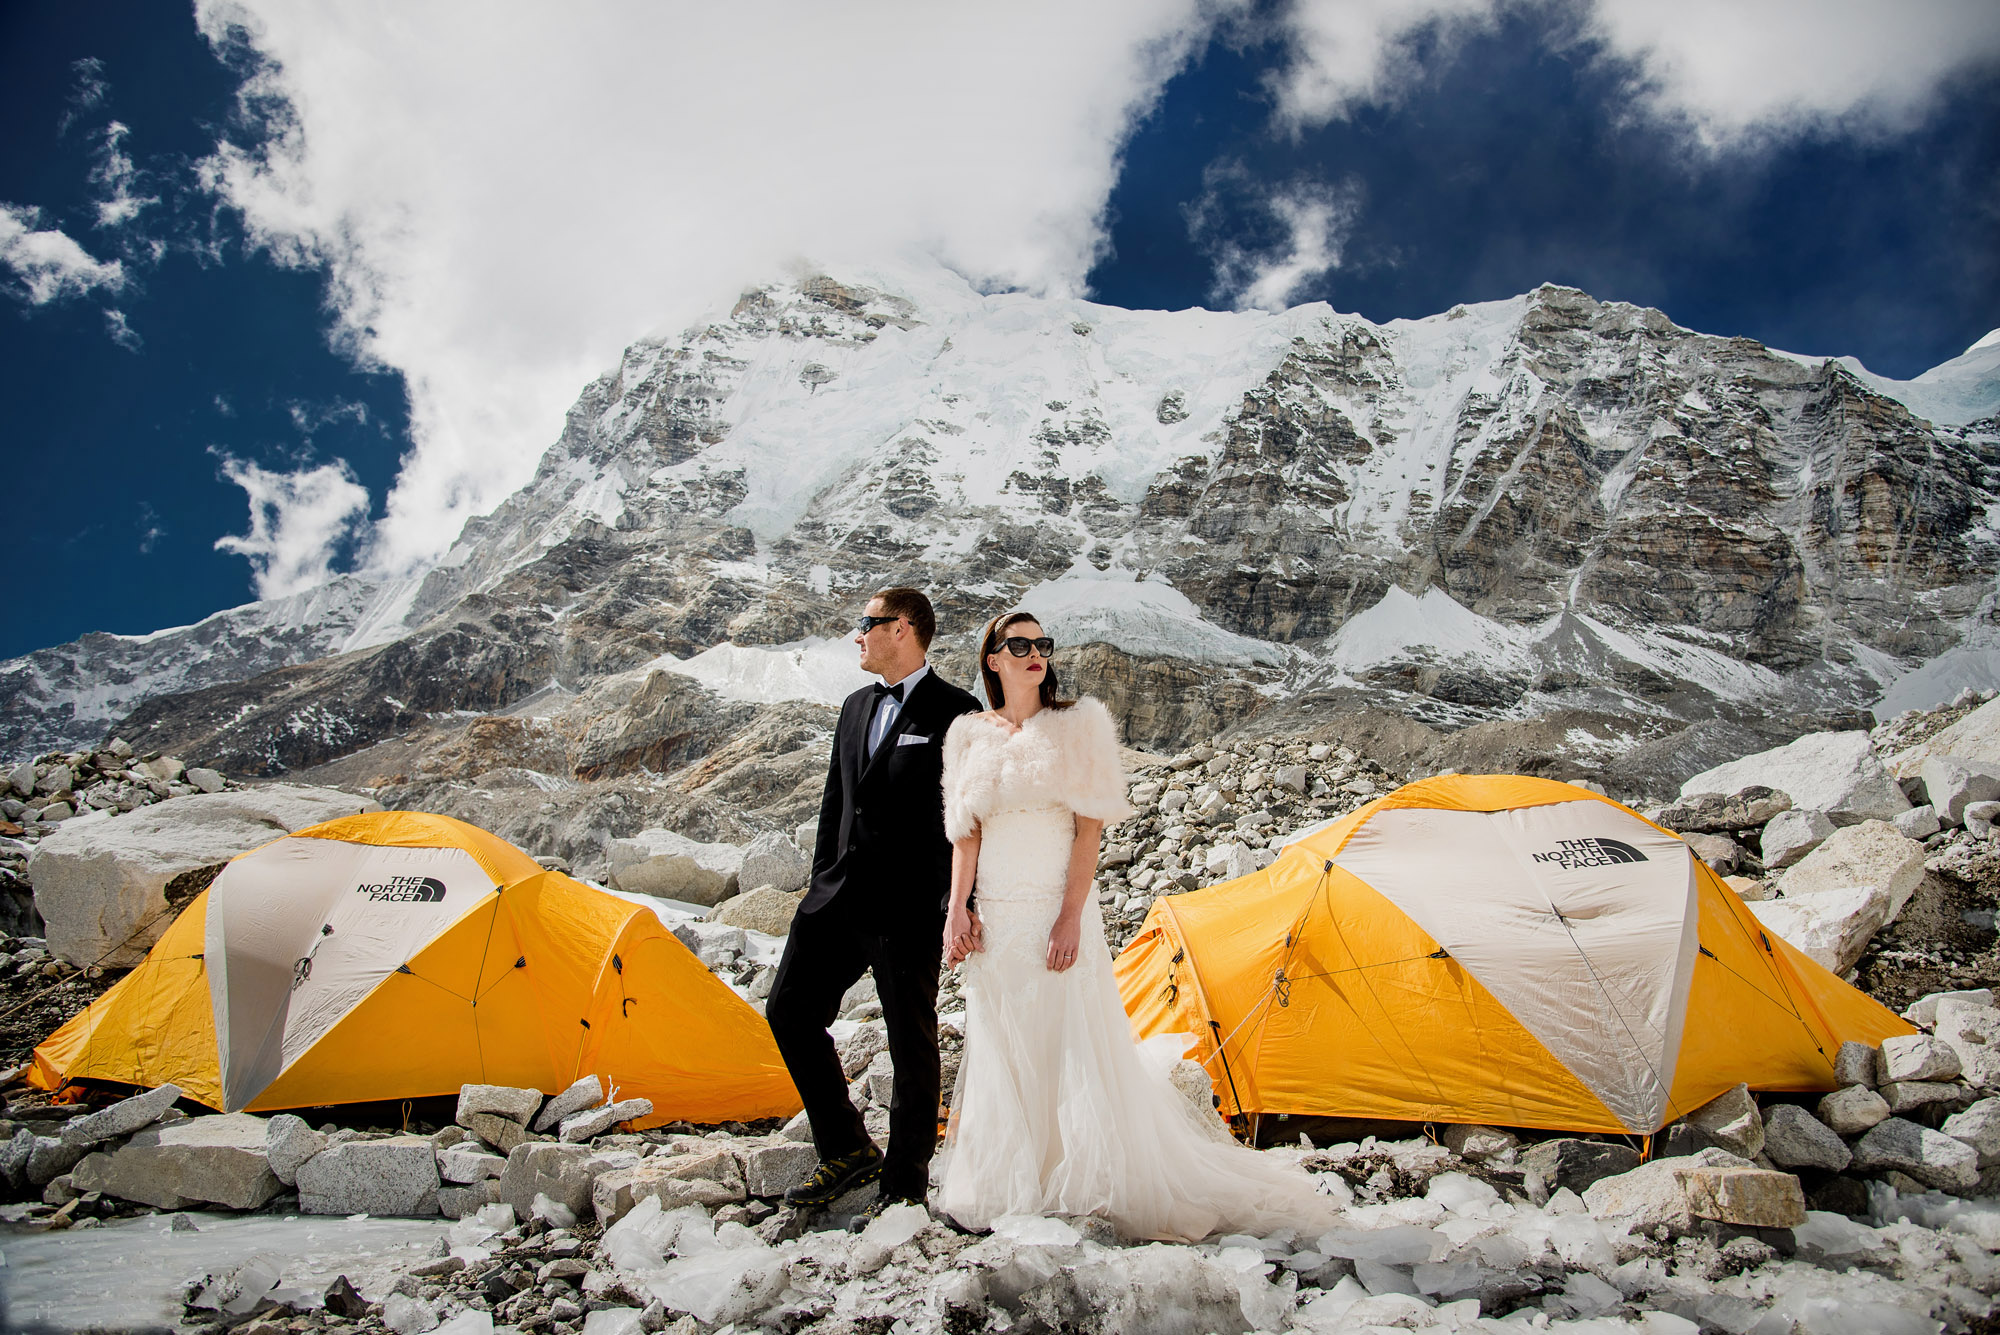 This adventurous couple was married at Everest Base Camp.